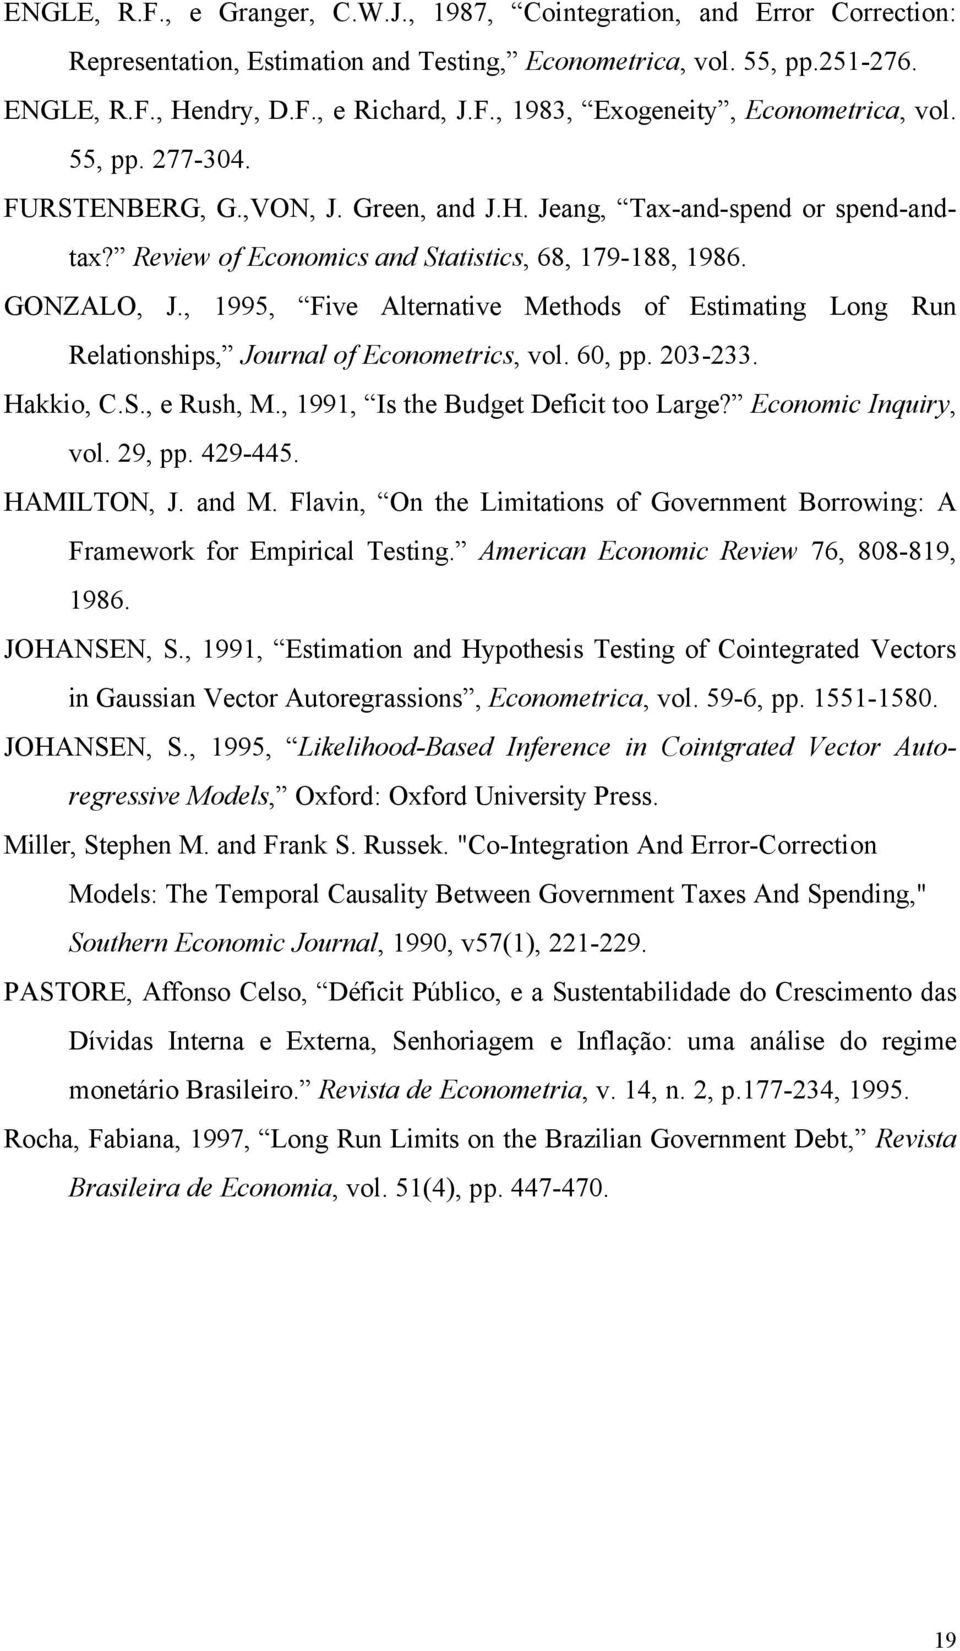 , 1995, Five Alernaive Mehods of Esimaing Long Run Relaionships, Journal of Economerics, vol. 60, pp. 203-233. Hakkio, C.S., e Rush, M., 1991, Is he Budge Defici oo Large? Economic Inquiry, vol.